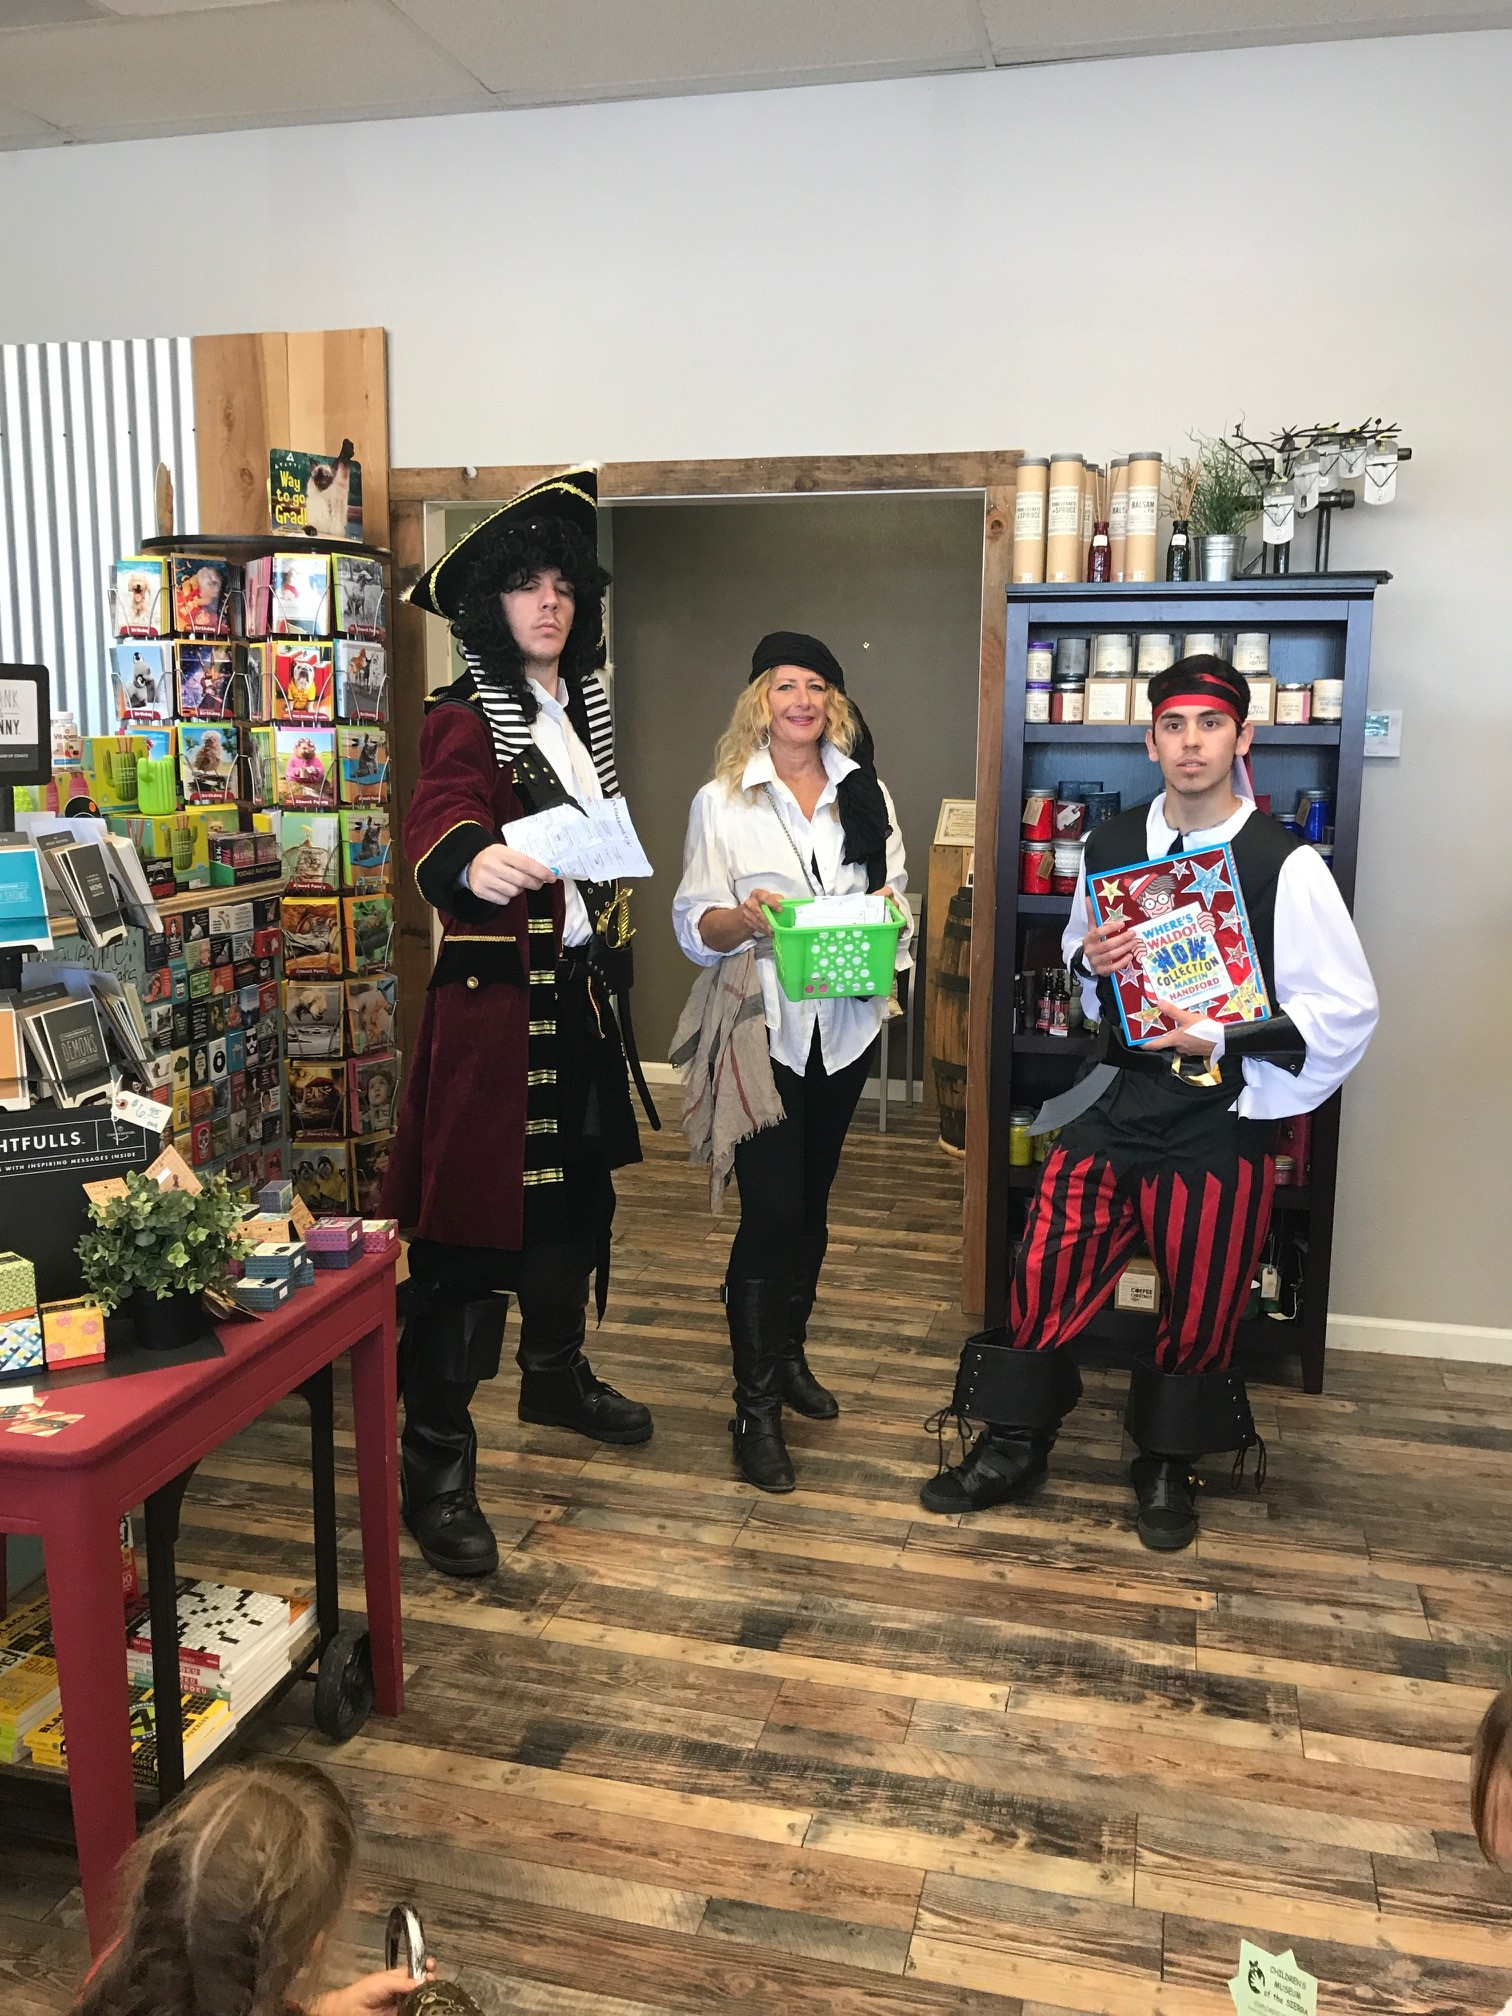 Branches Books & Gifts in Oakhurst, California, hosted a pirate-themed finale party.